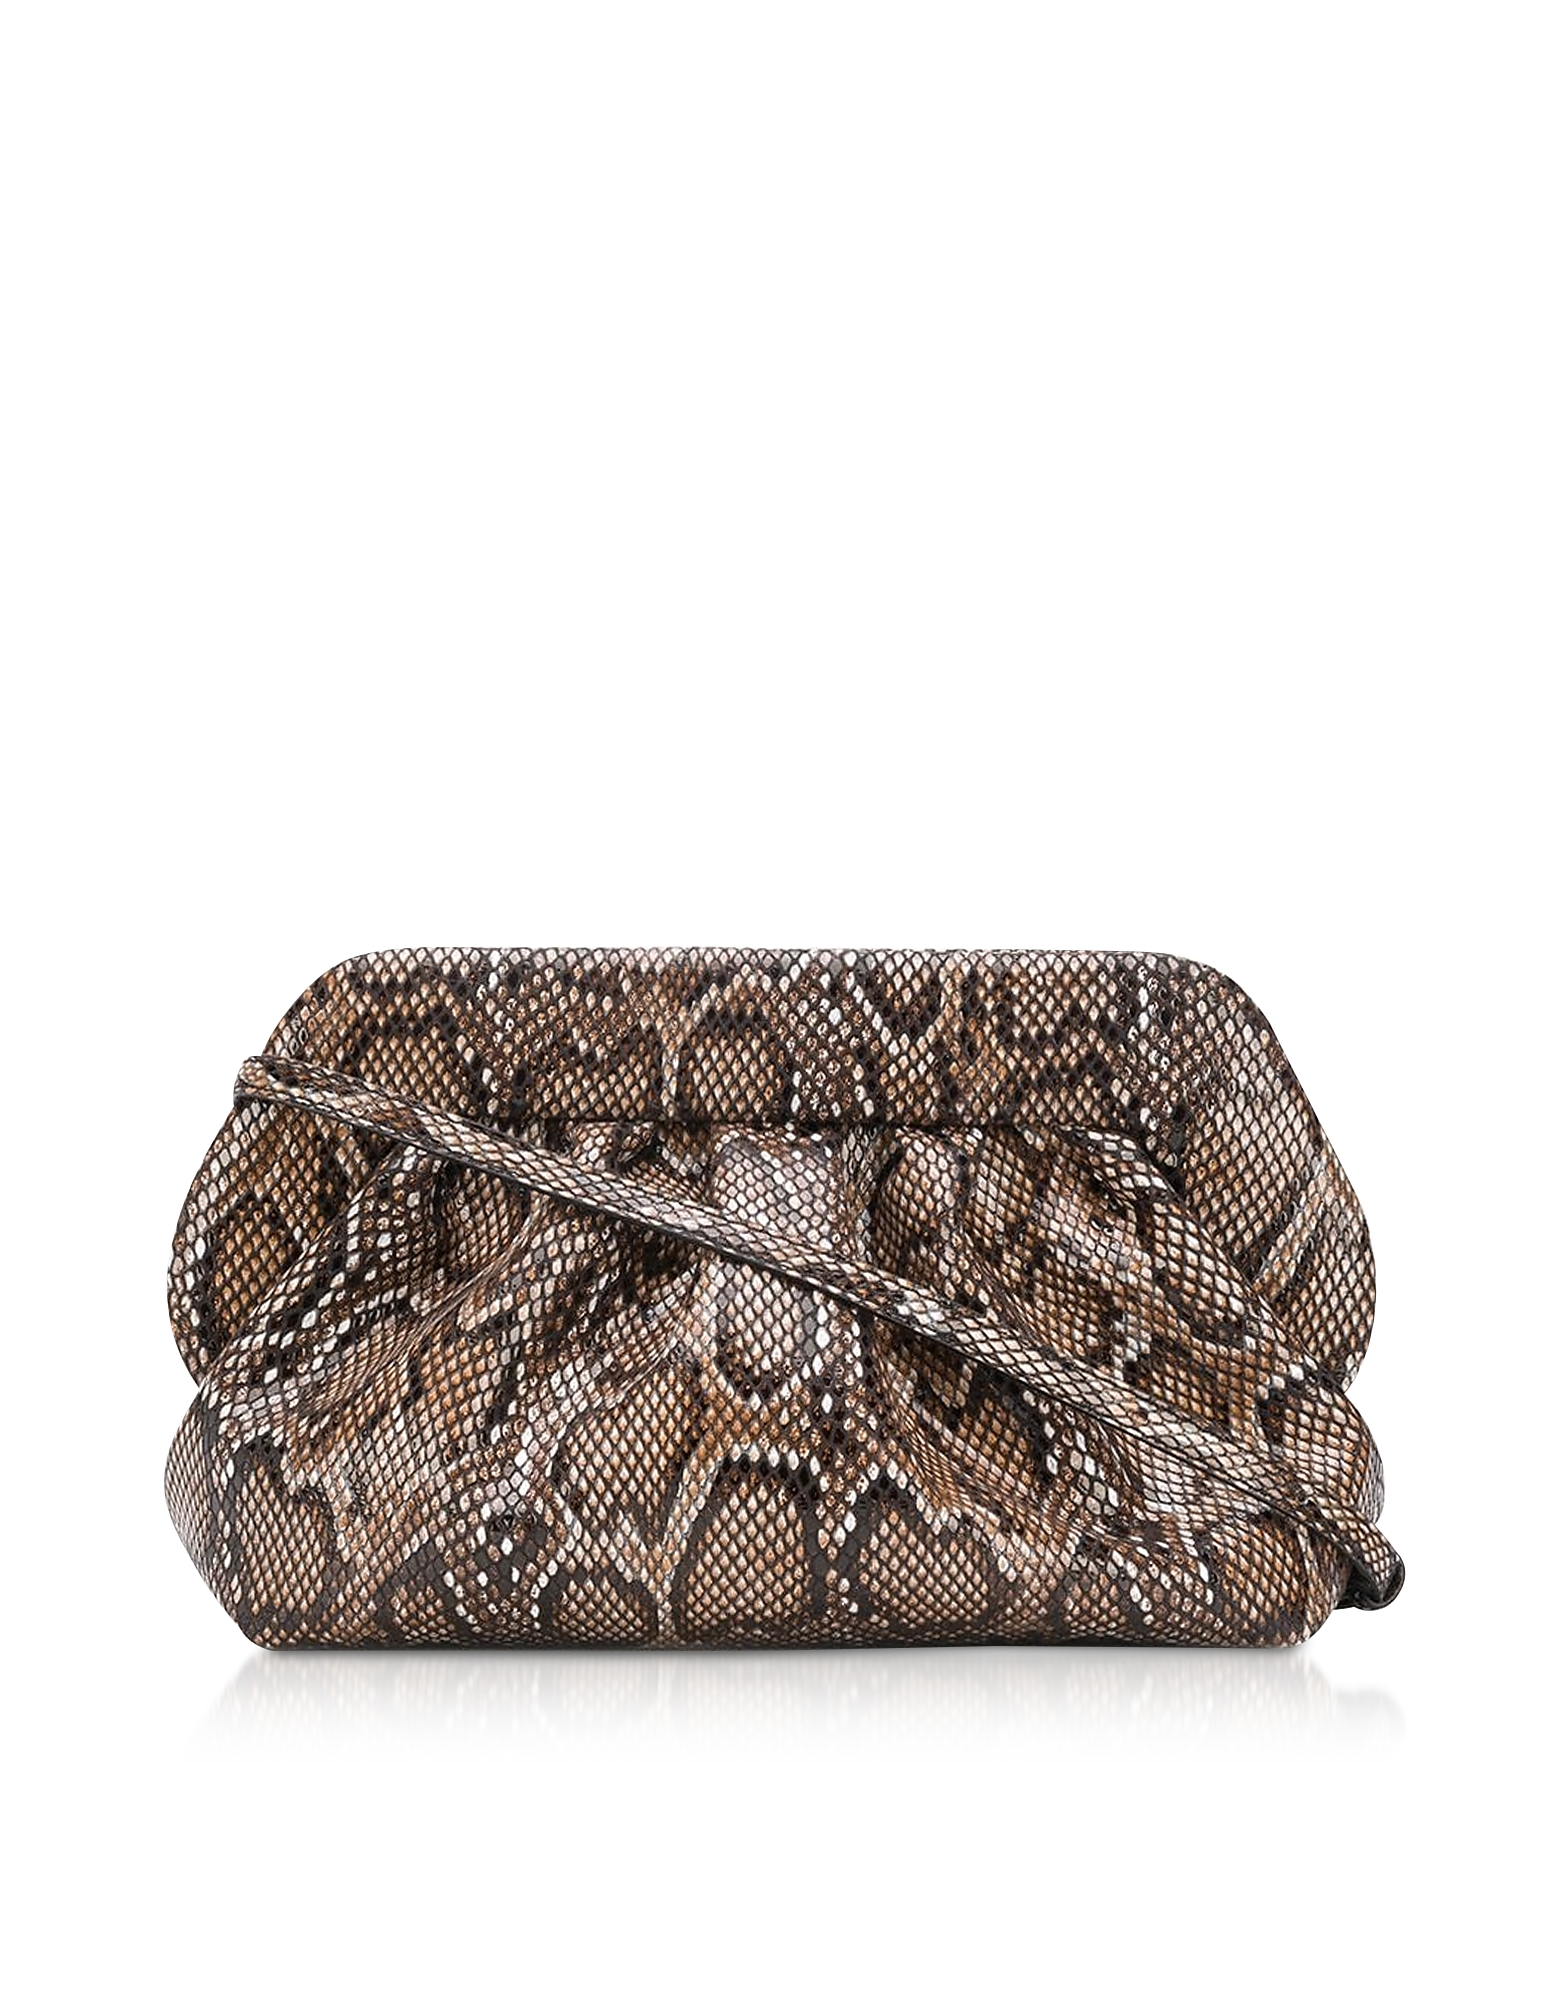 THEMOIRÉ Designer Handbags, Dark Python Printed Eco Leather Pouch Bag